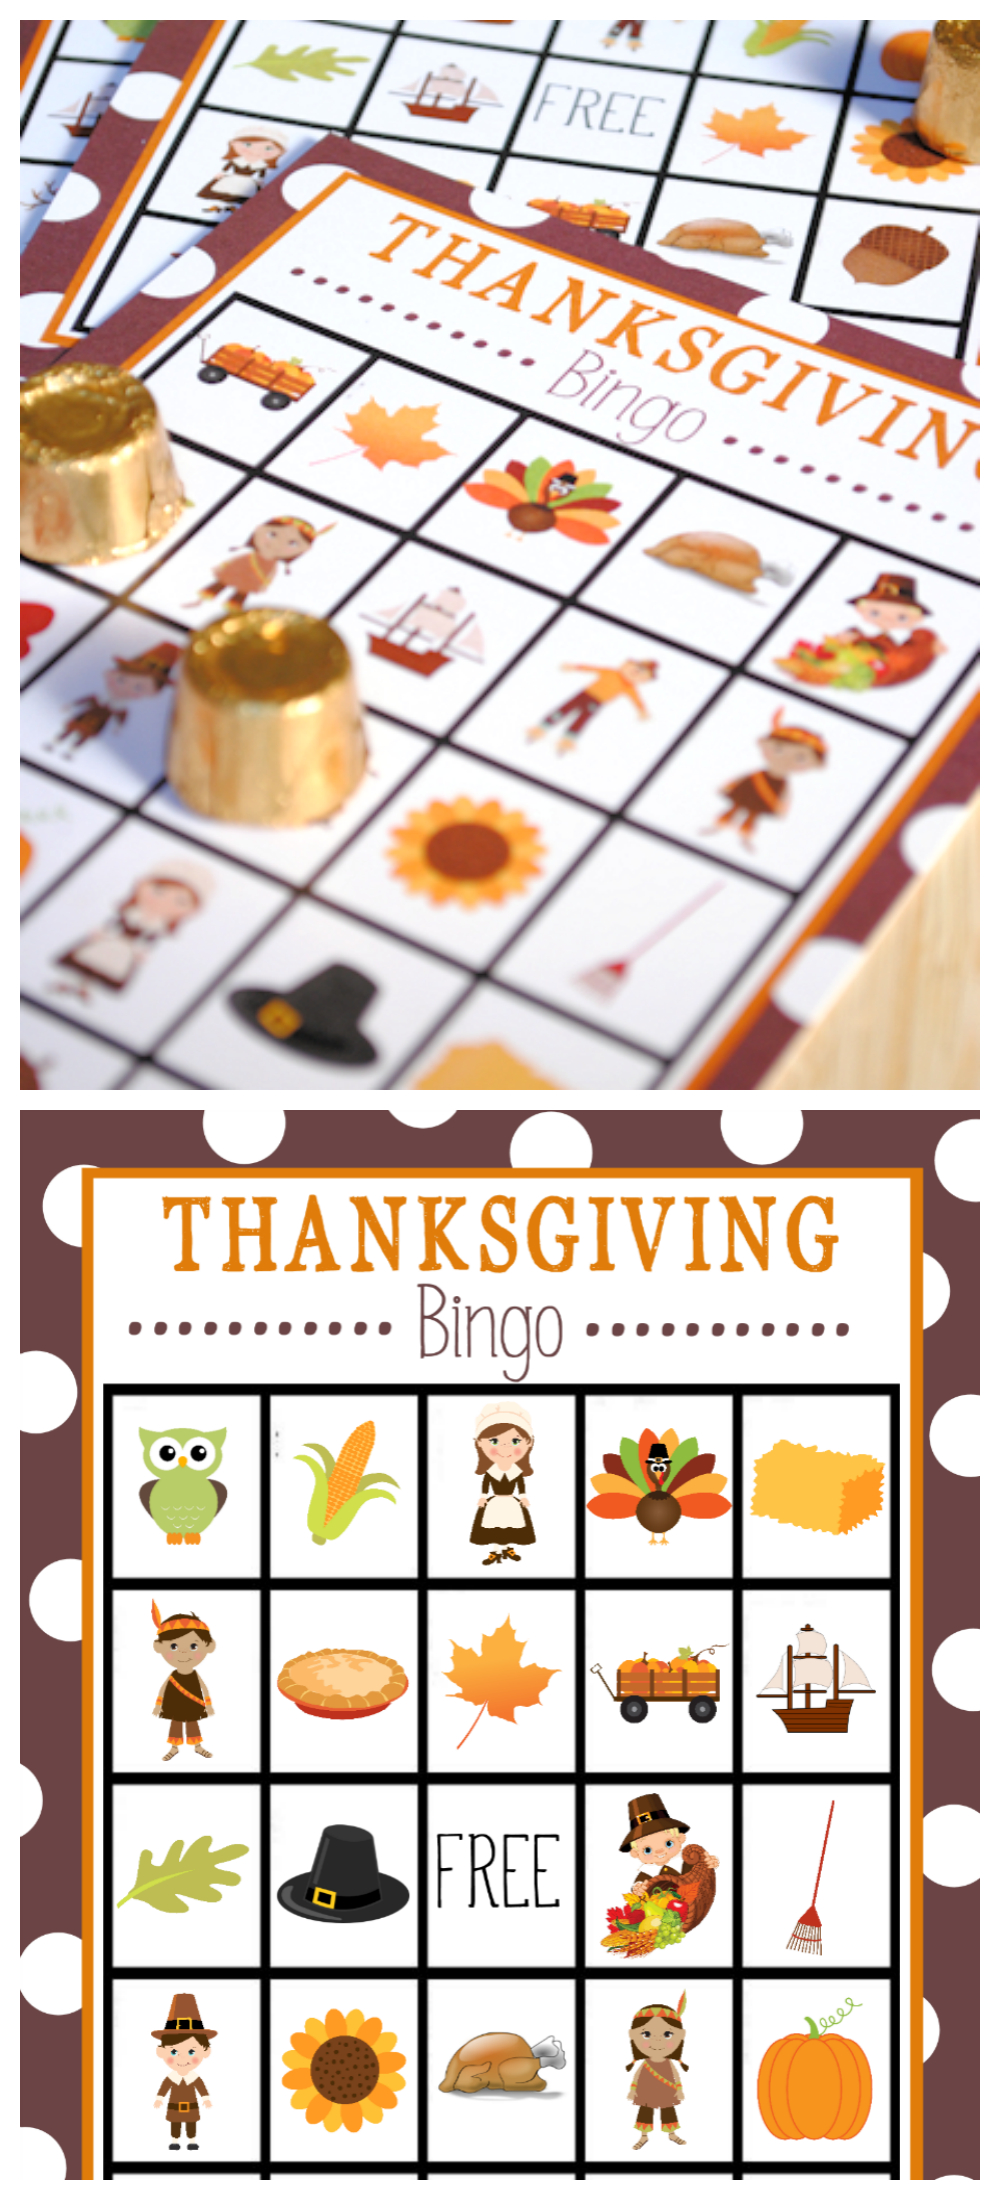 Free Printable Thanksgiving Bingo Game | Thanksgiving | Thanksgiving - Free Printable For Thanksgiving